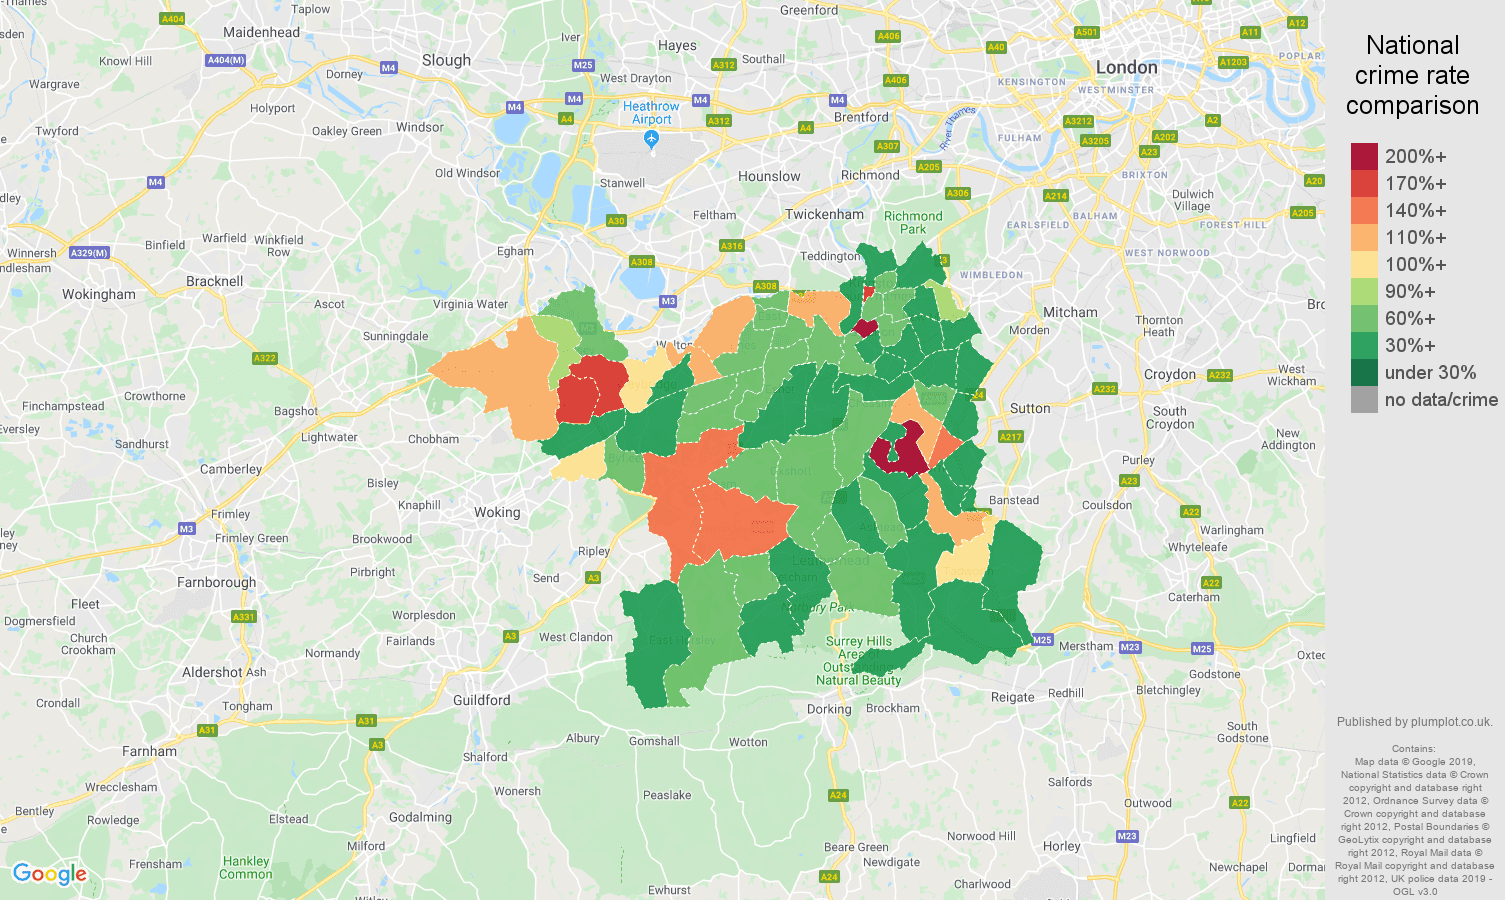 Kingston upon Thames public order crime rate comparison map